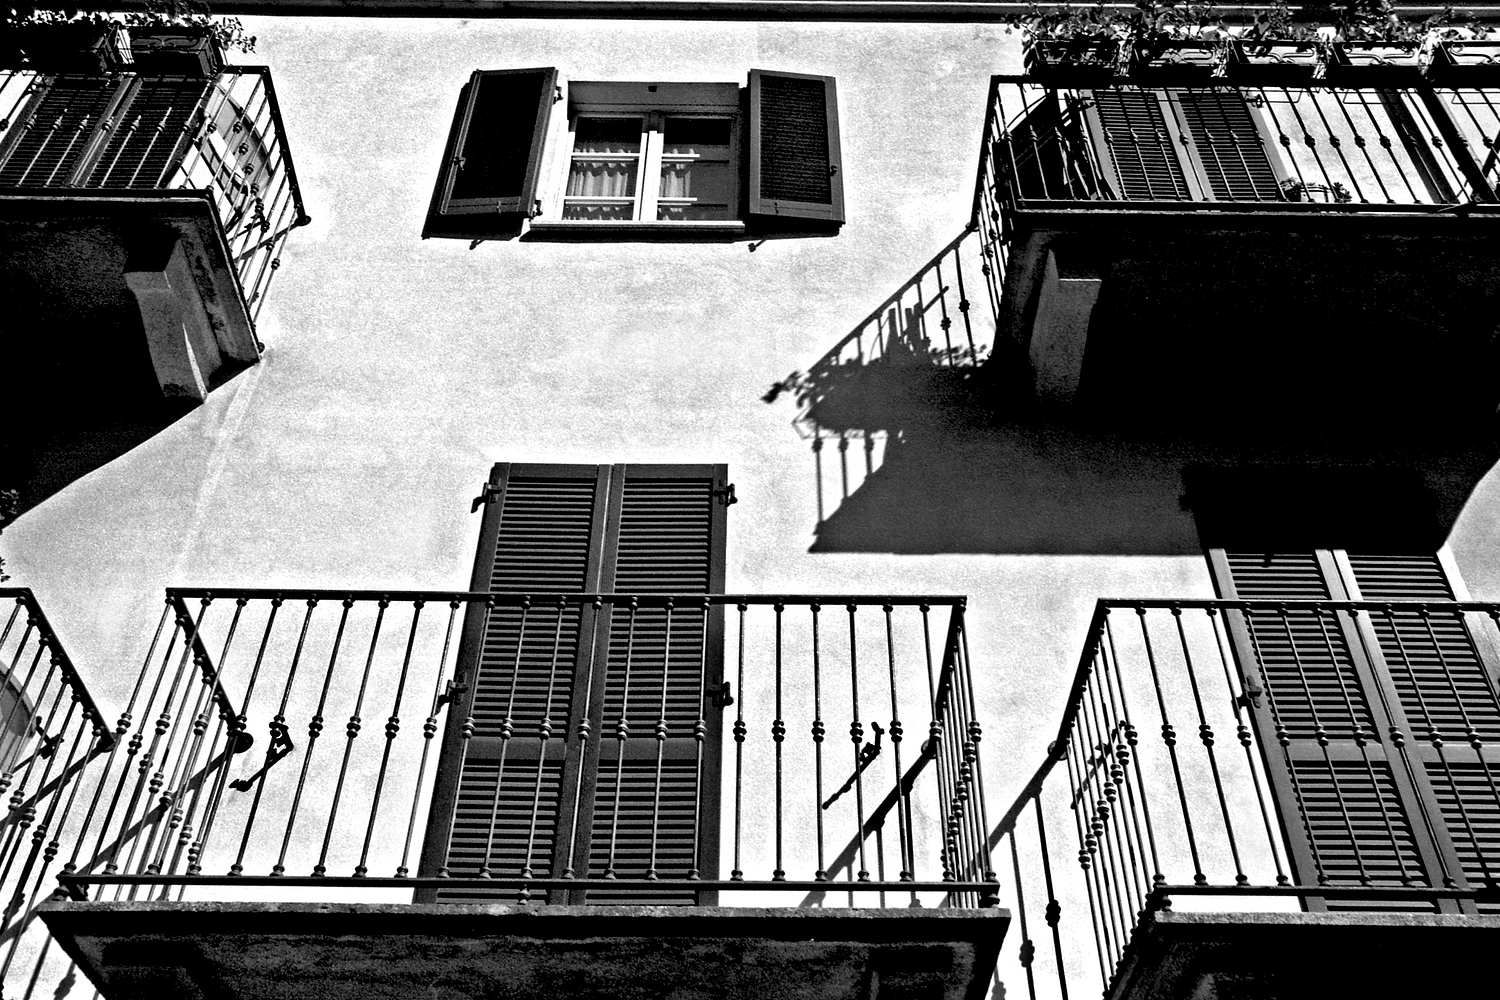 Balconies & A Window, Lake Como 2018   Edition 1 of 2